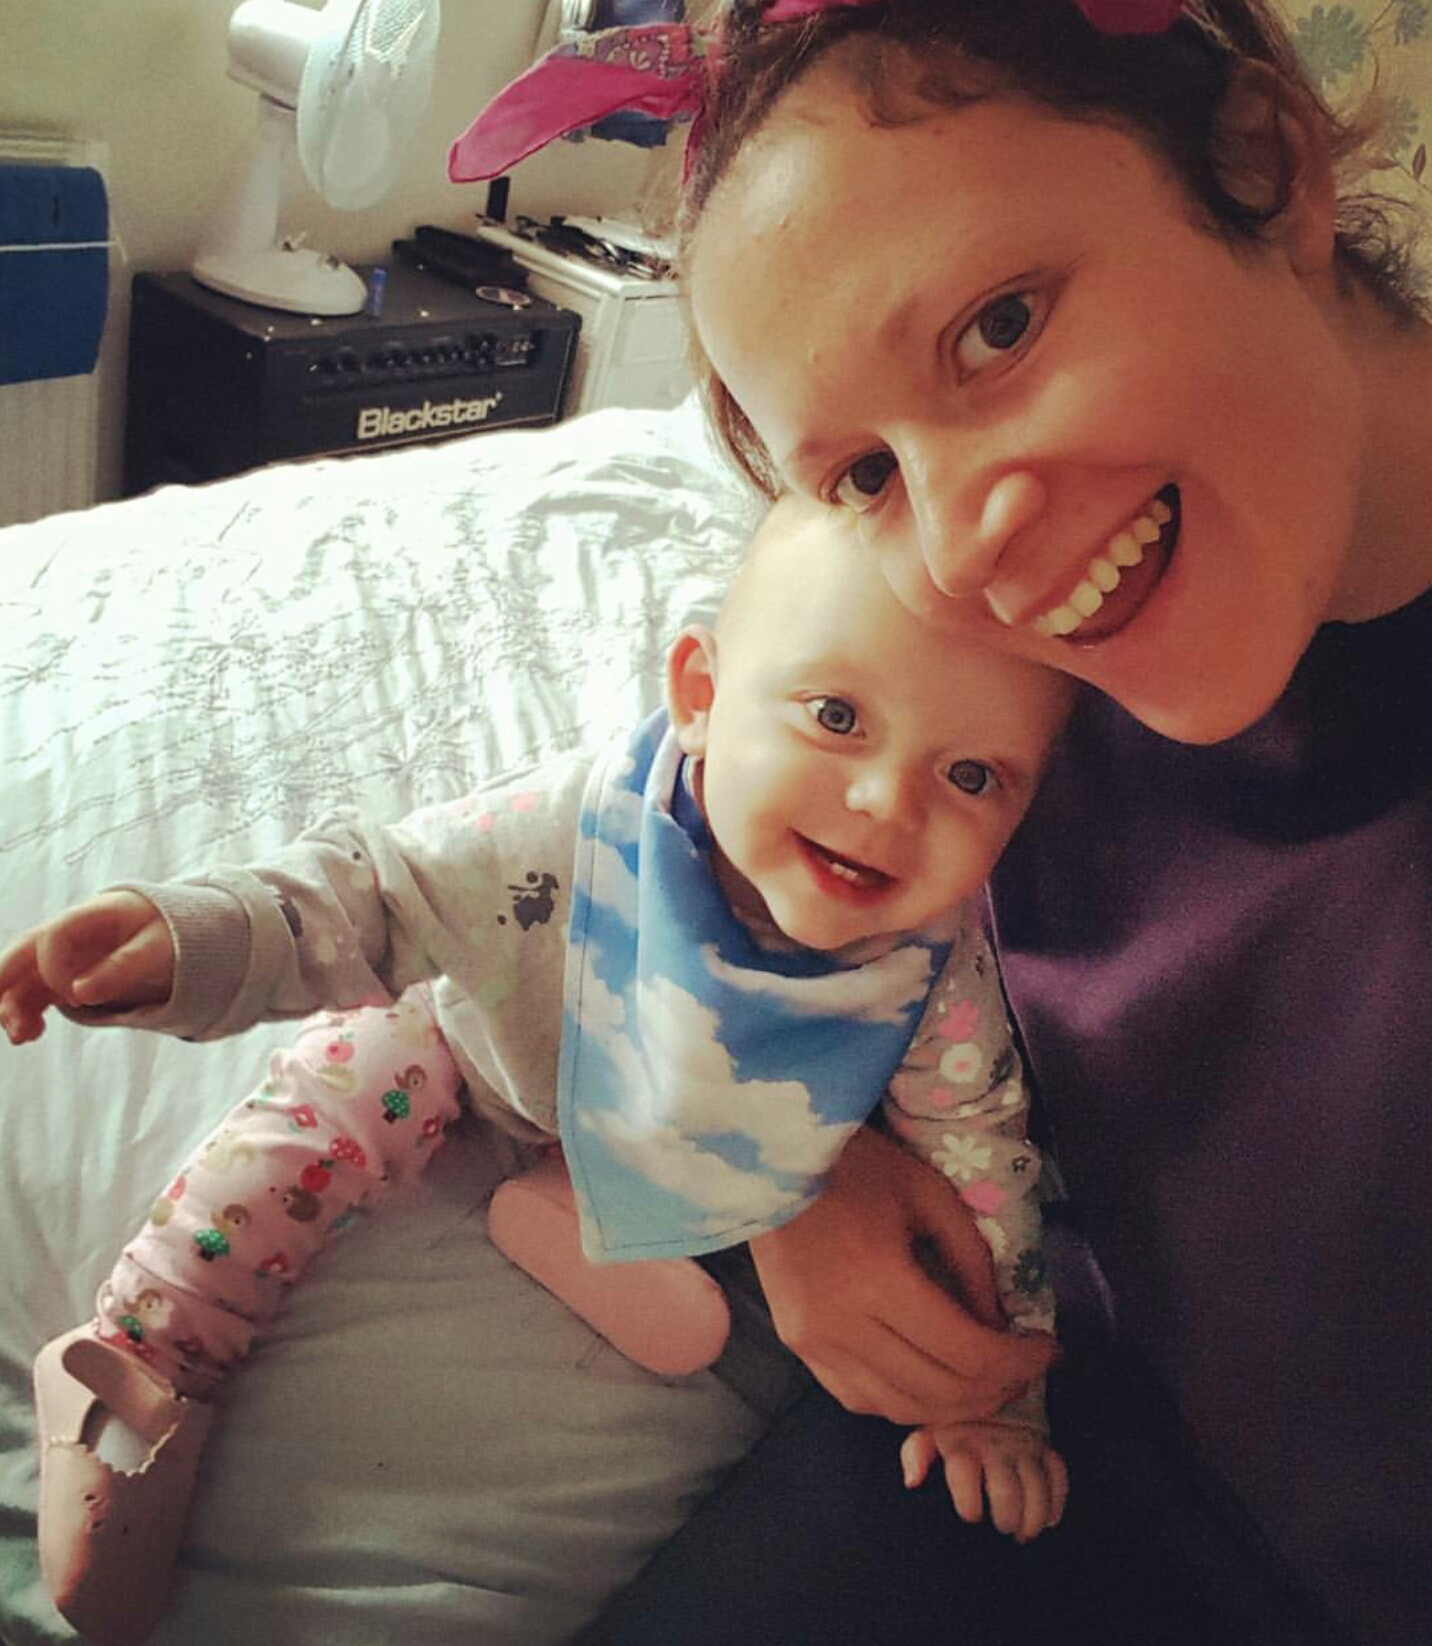 Maternity leave is never what you think!